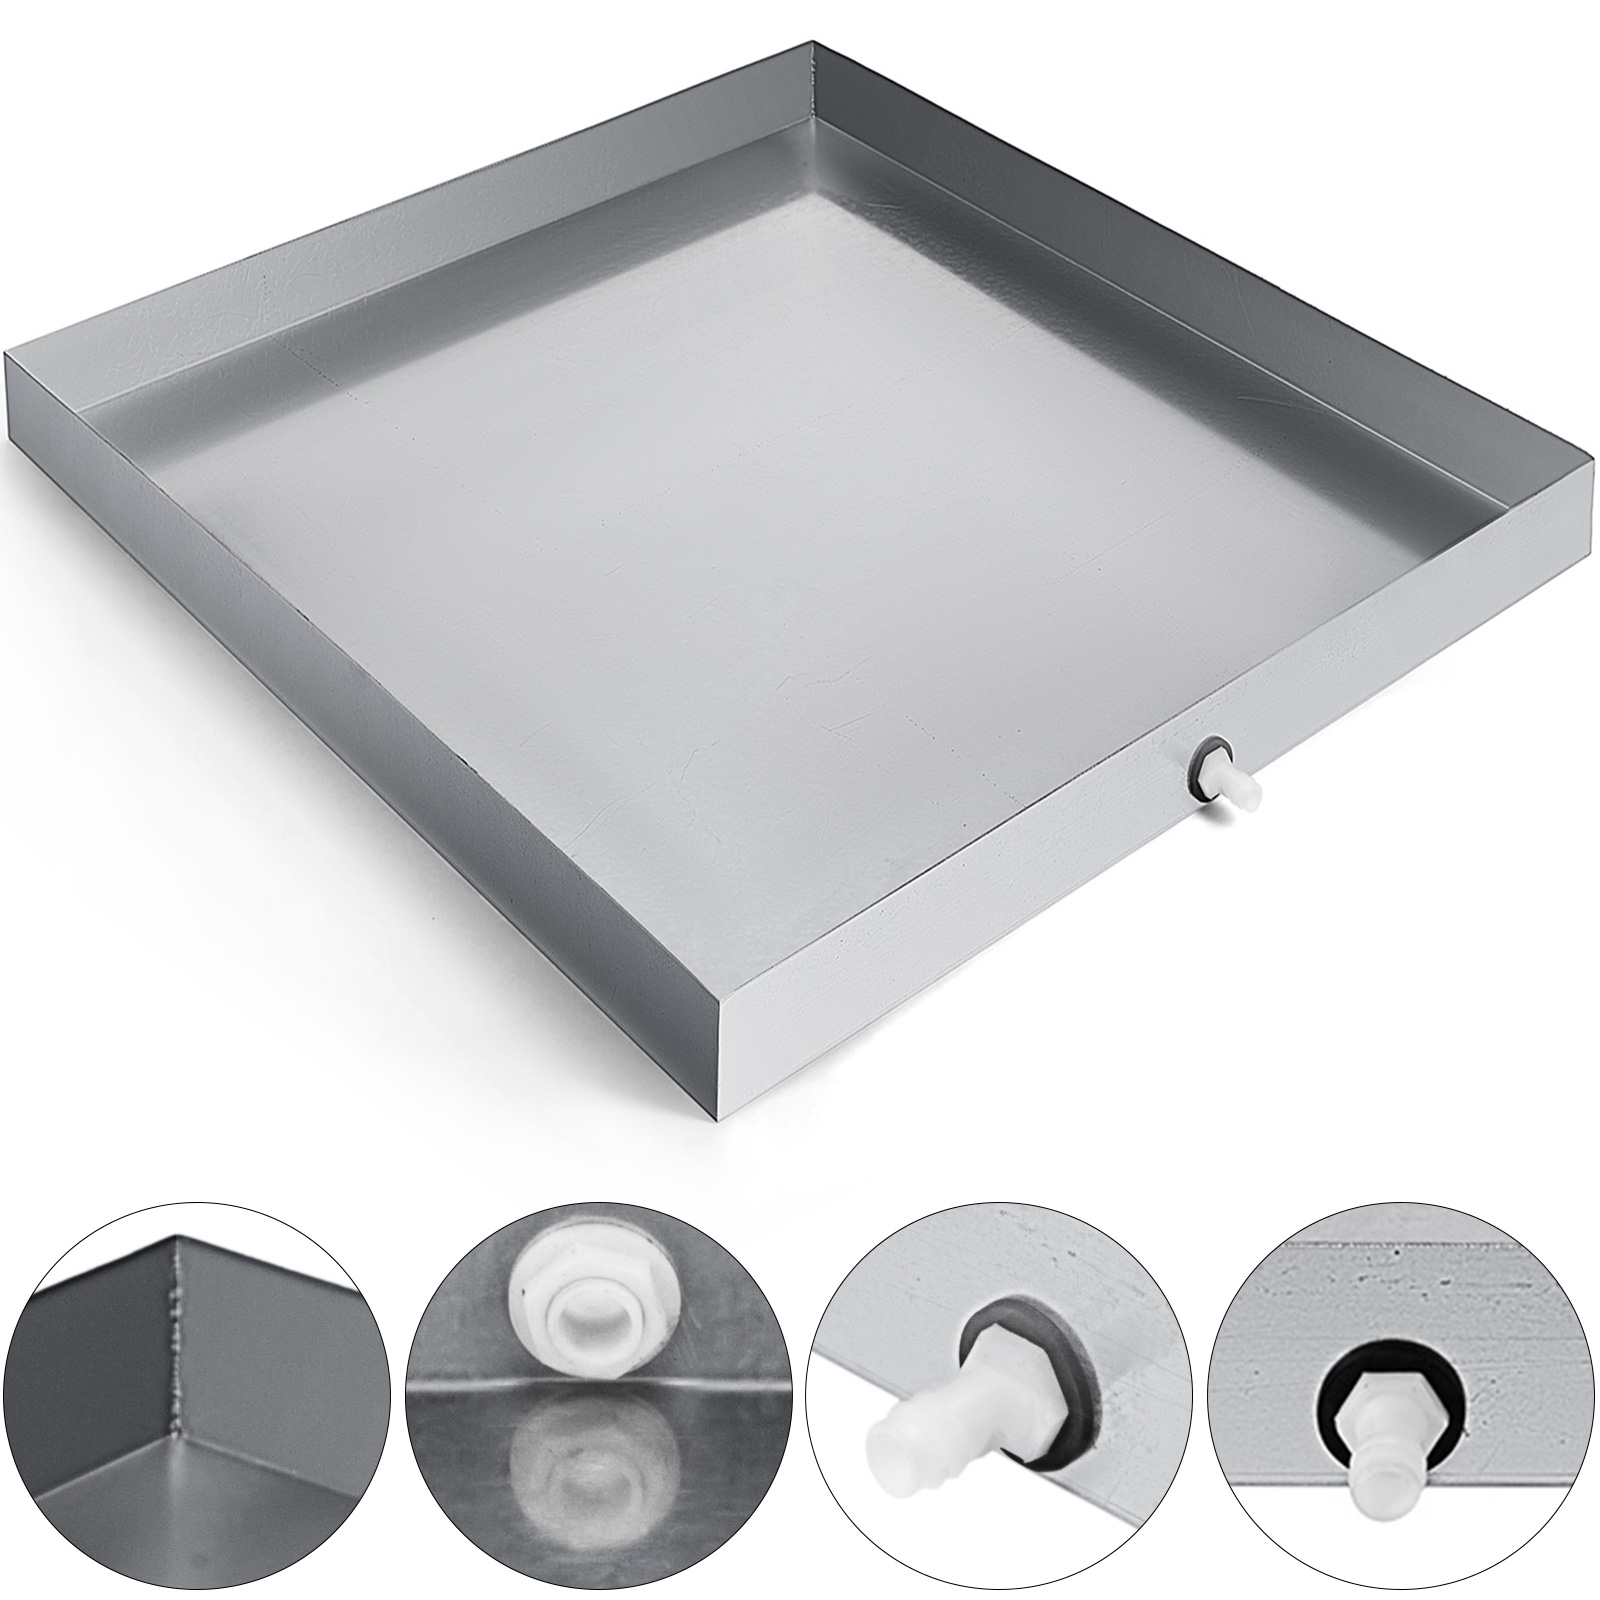 46x43x9cm Moving The Tool Base Color : A NingNing Washing Machine Stainless Steel Heightening Drainage Tray for Furniture Refrigerator Washing Machine Heavier Items